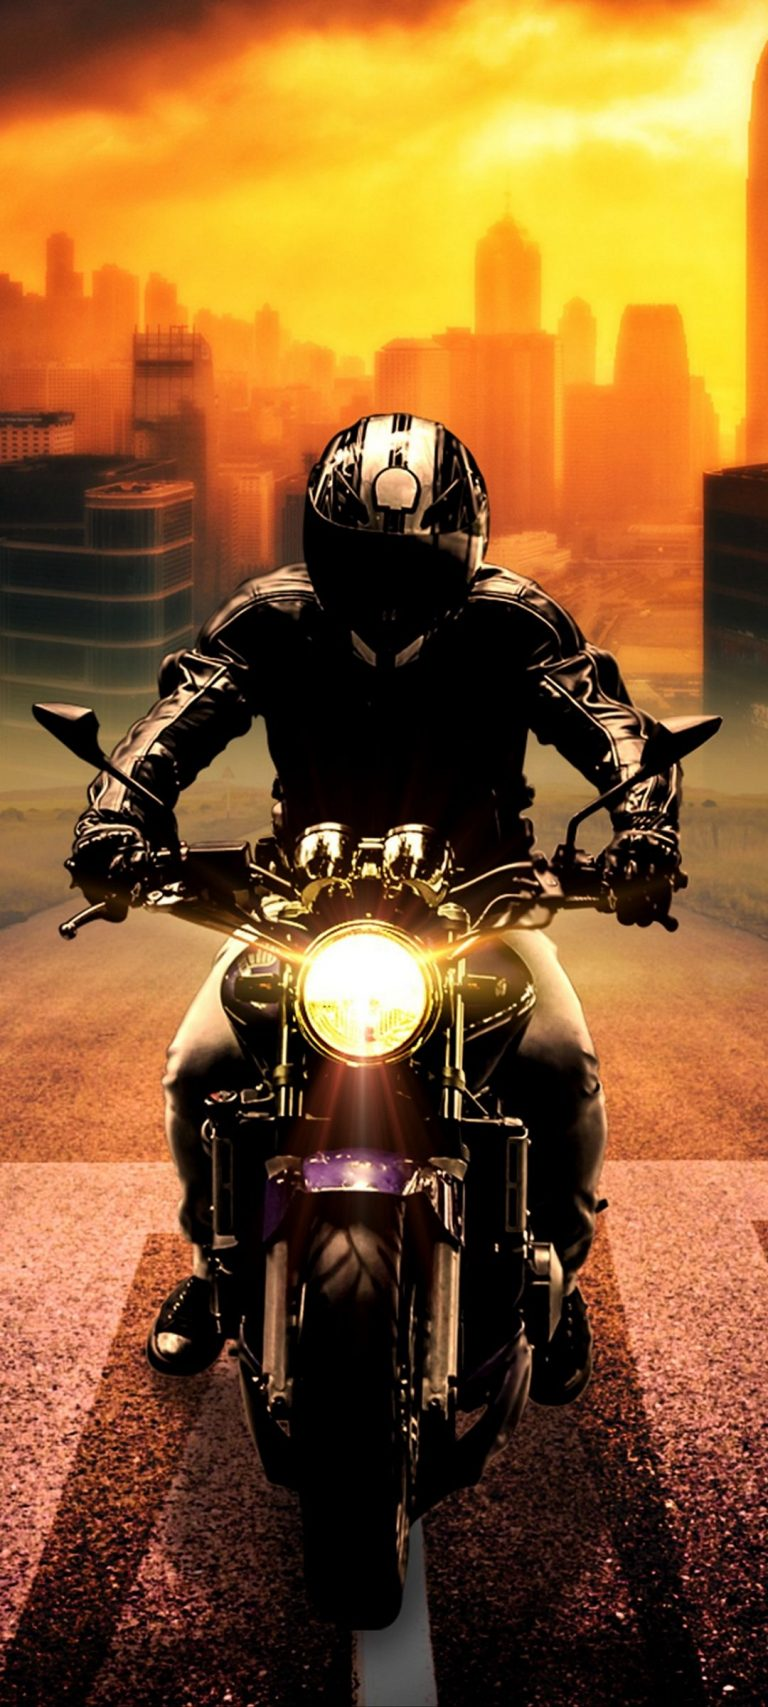 Biker Bike Motorcycle 1080x2400 768x1707